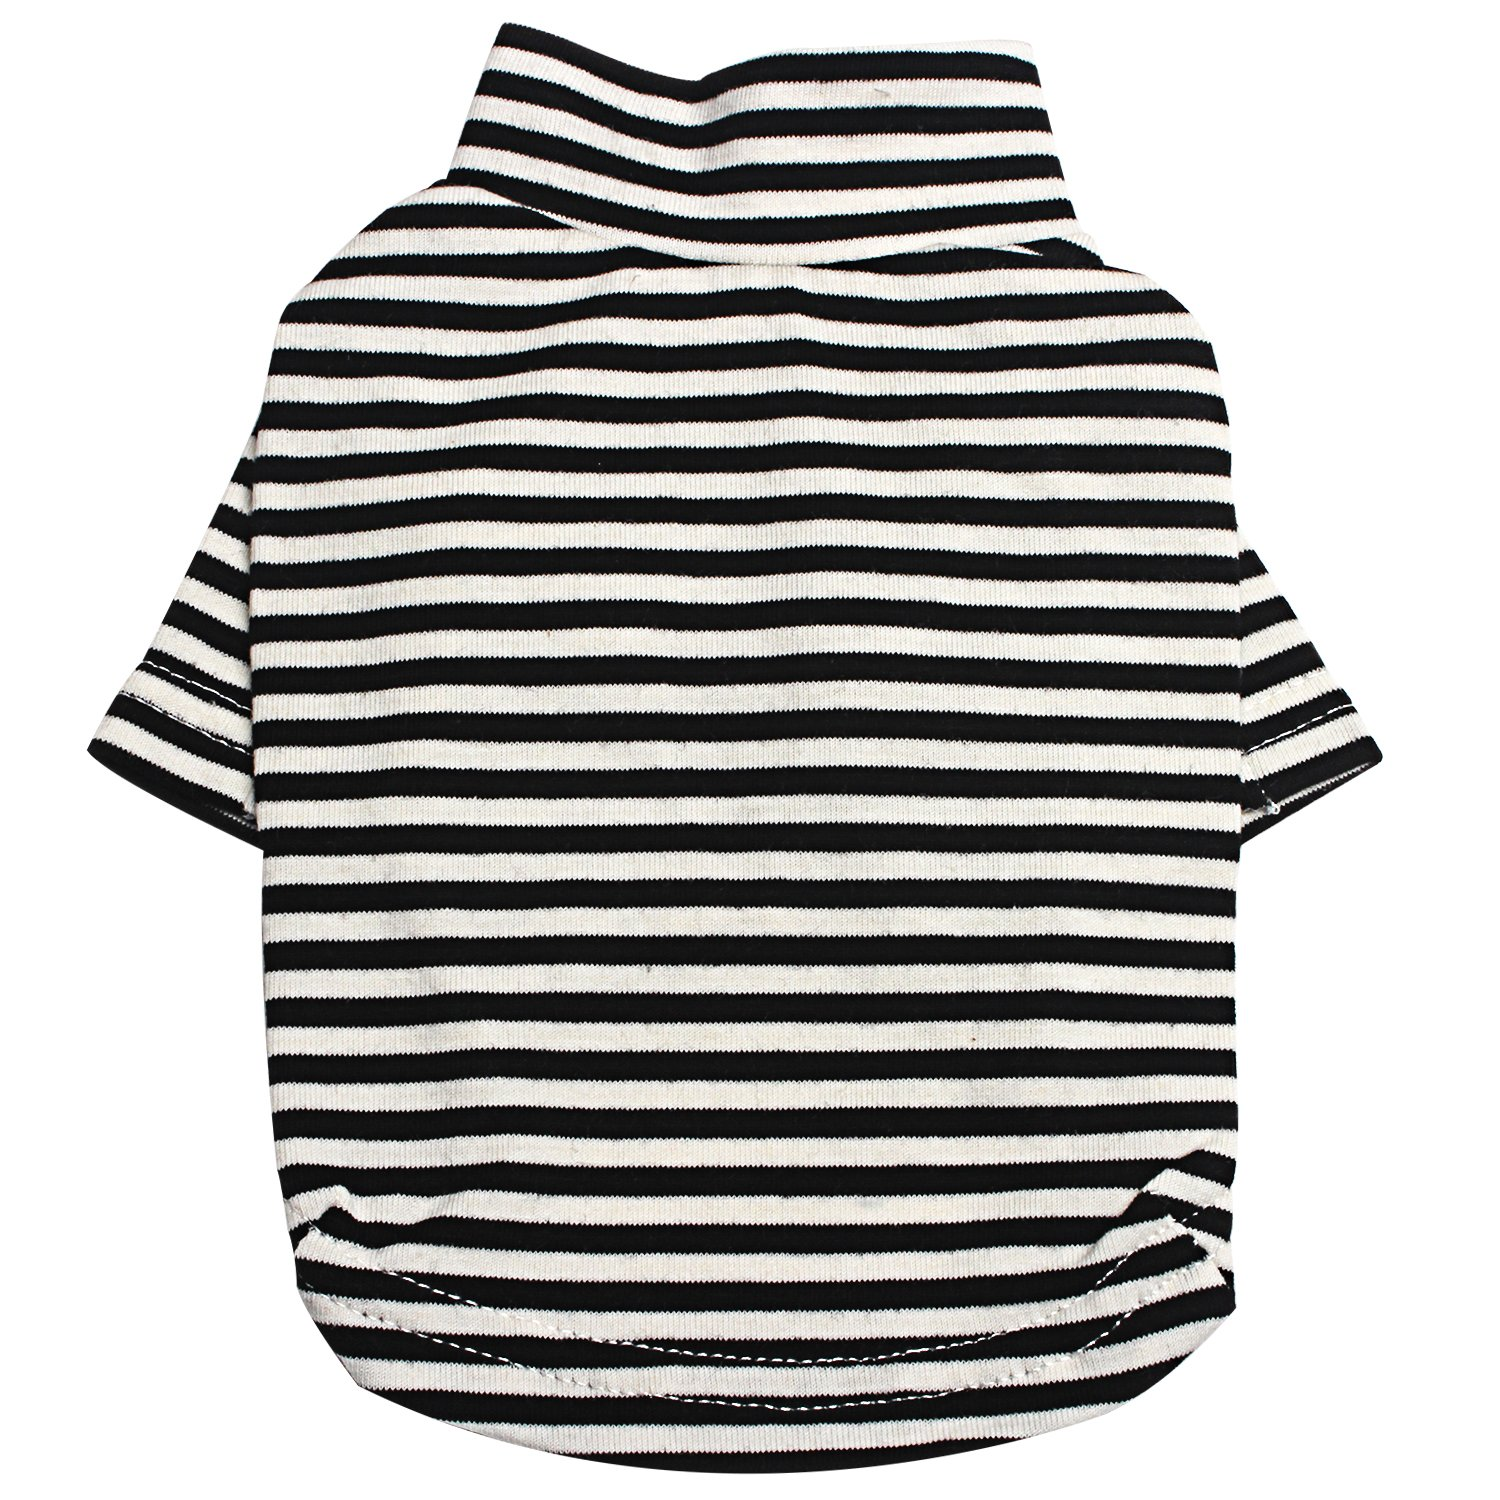 TONY HOBY Pet Dog Shirts Striped Dog T-Shirts Cotton Made Puppy Clothes for Small Medium Large Dogs